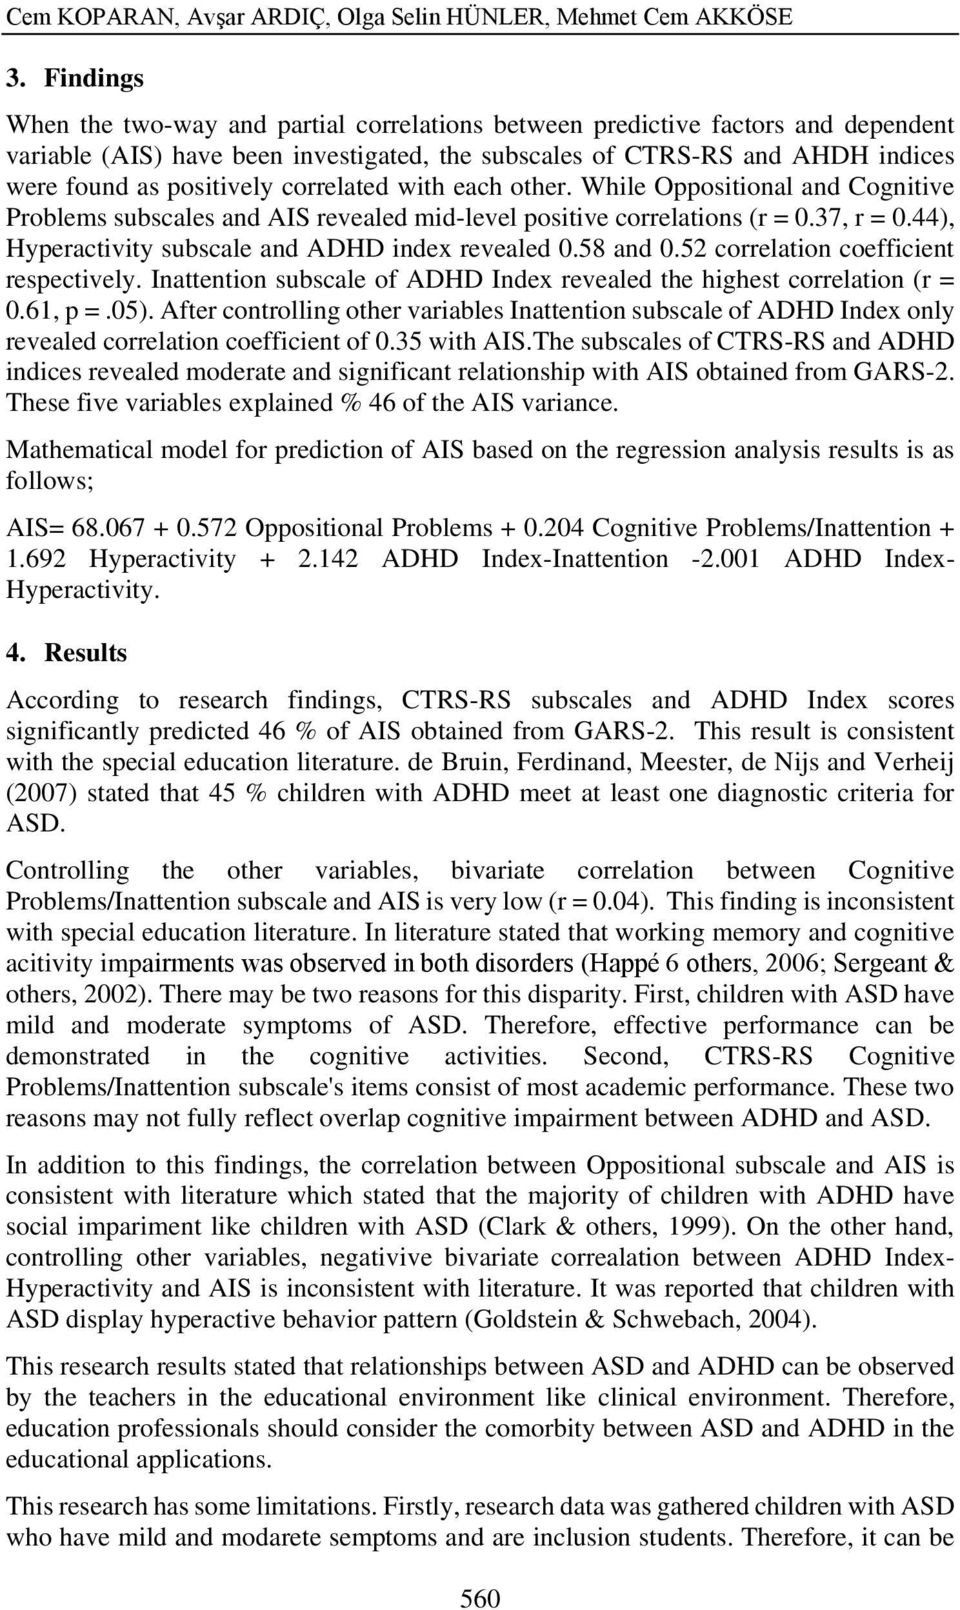 correlated with each other. While Oppositional and Cognitive Problems subscales and AIS revealed mid-level positive correlations (r = 0.37, r = 0.44), Hyperactivity subscale and ADHD index revealed 0.